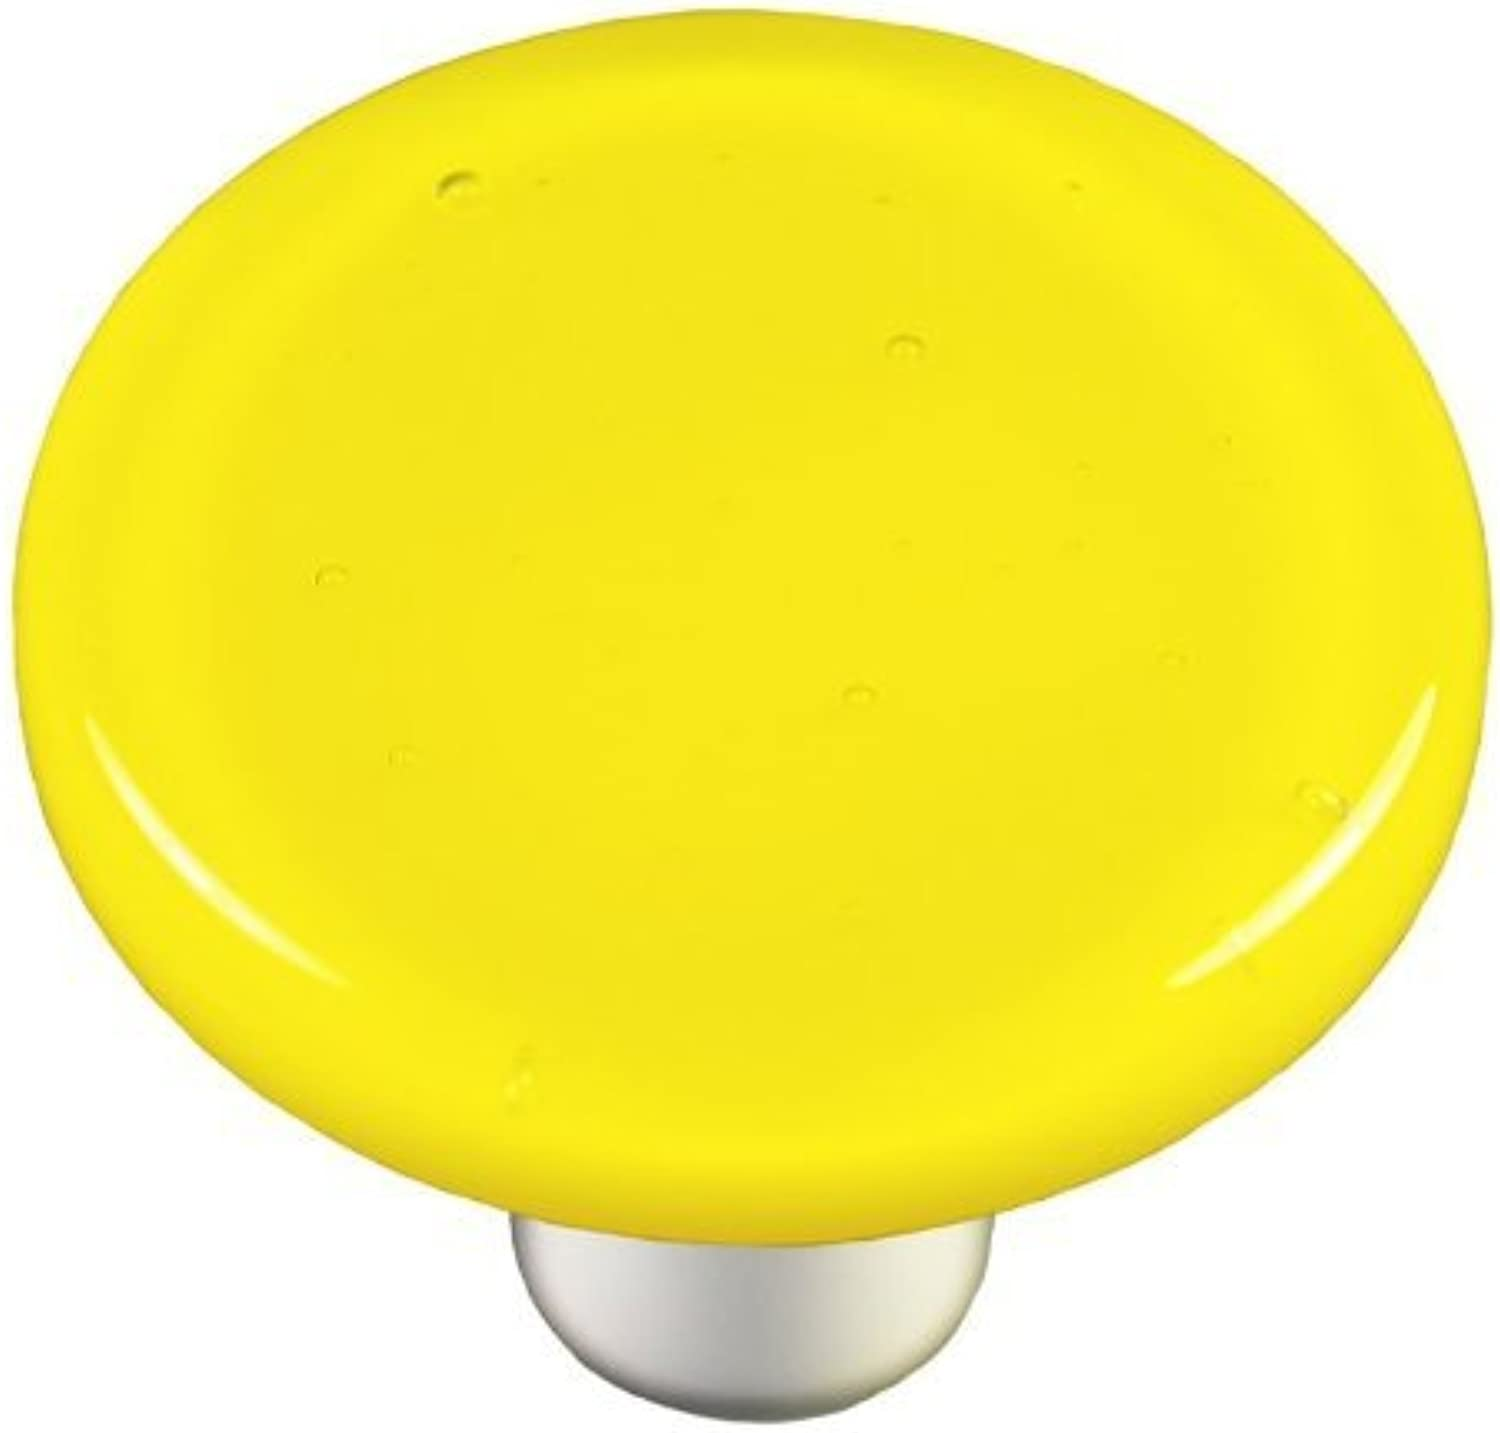 Hot Knobs HK1010-KRA Canary Yellow Round Glass Cabinet Knob - Aluminum Post